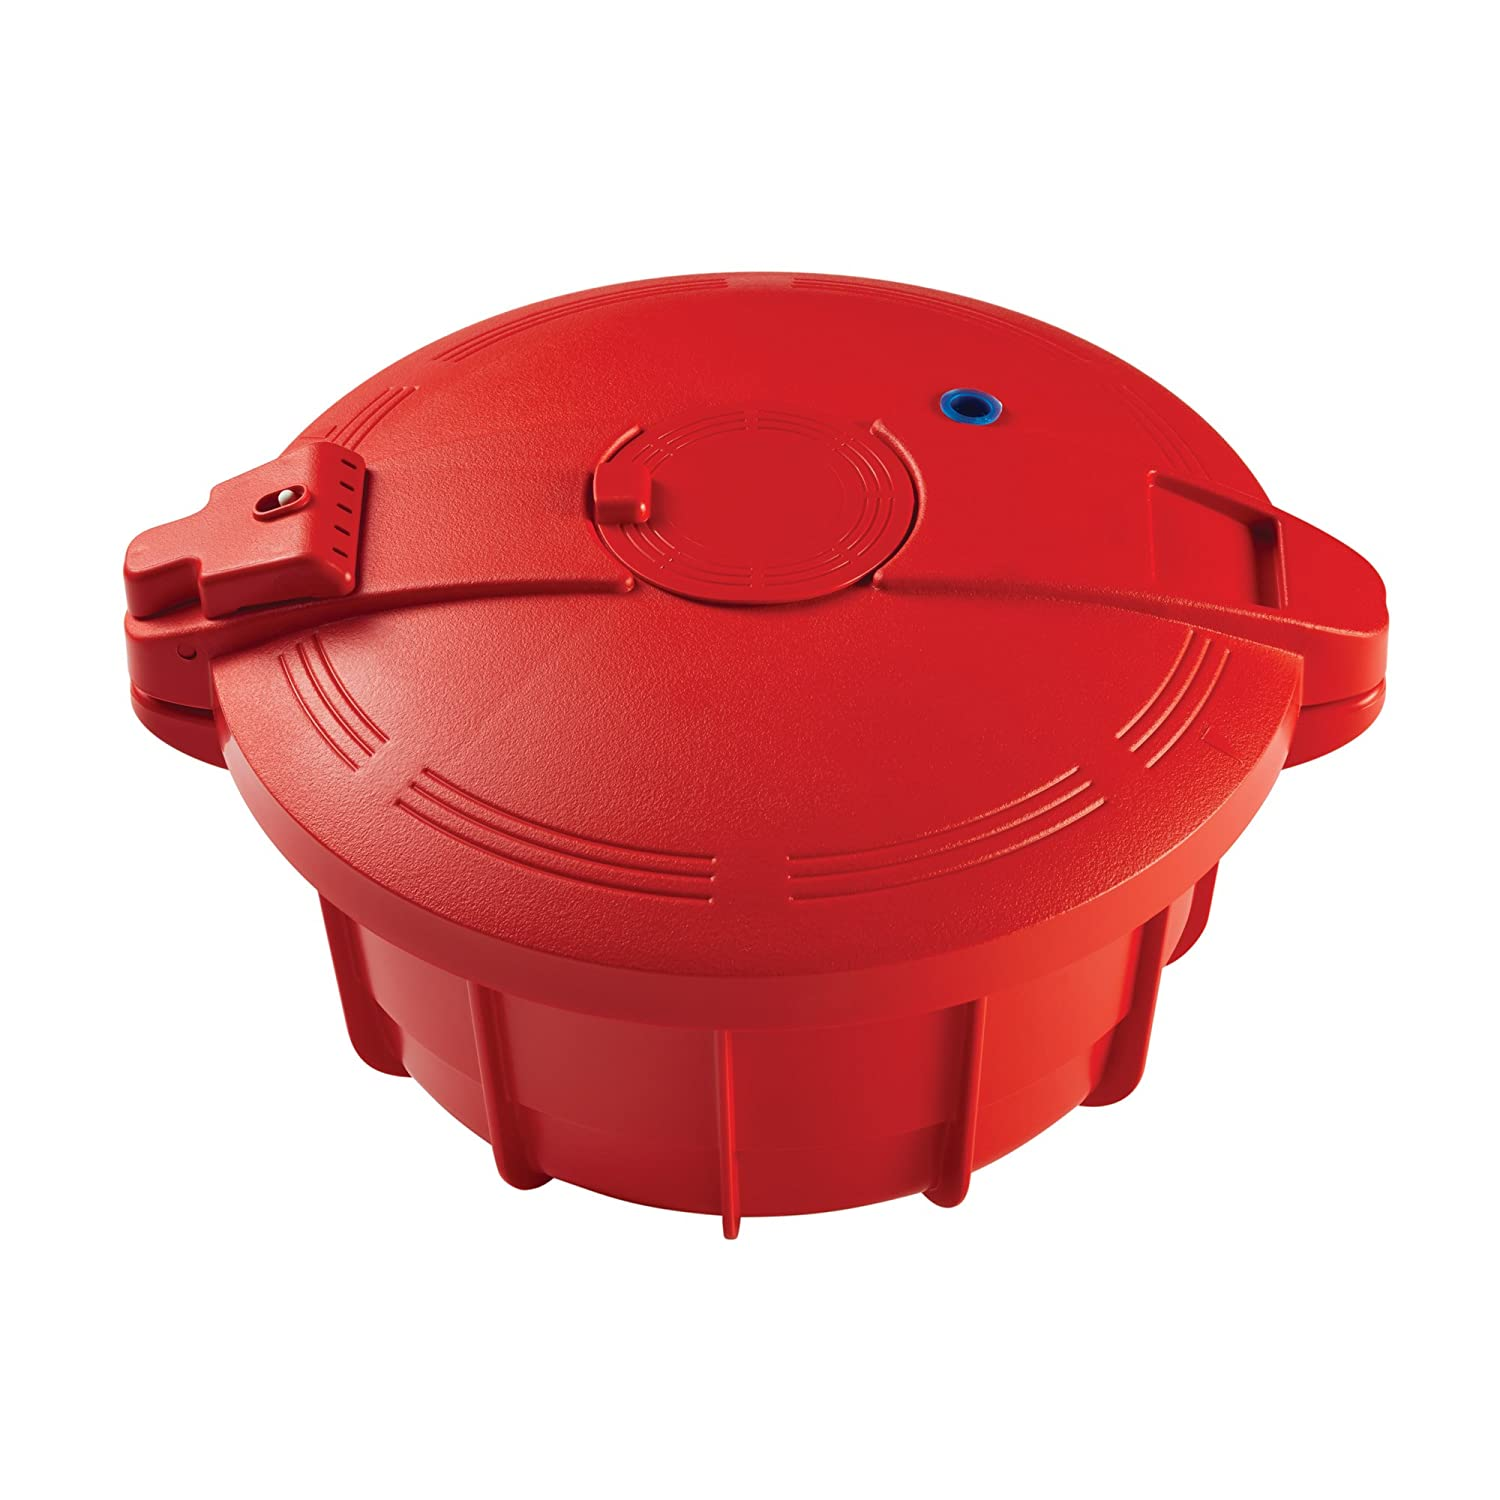 Large SilverStone Microwave Cookware BPA-Free Microwavable Pressure Cooker Chili Red